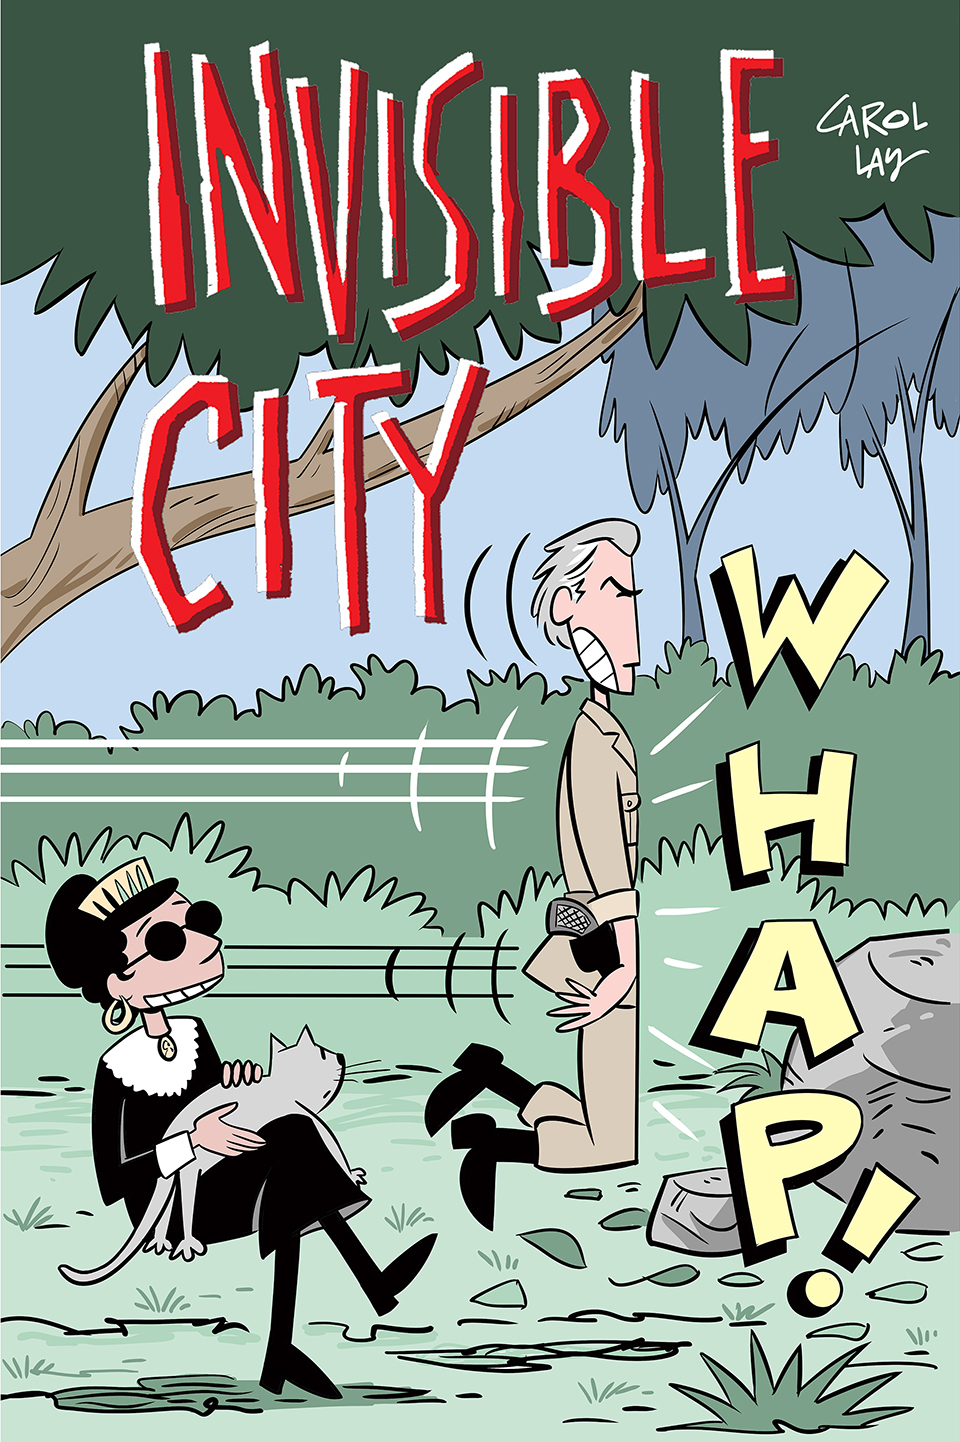 """Invisible City - The serial story """"Invisible City"""" formatted for digital devices in full color. 79 pages from Waylay Books, 2016."""